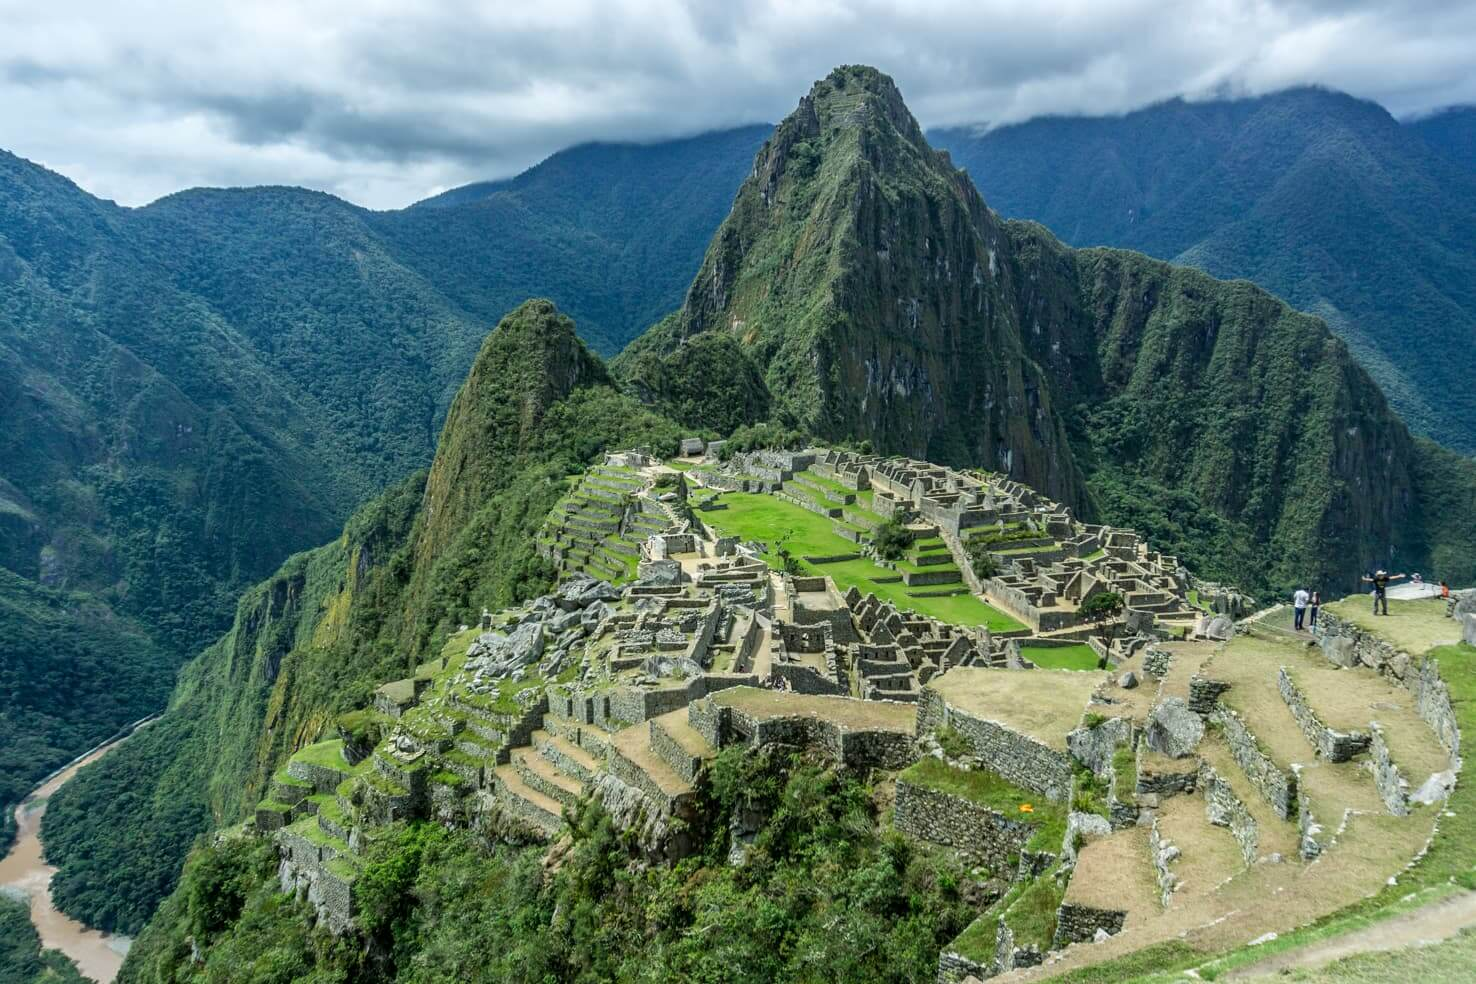 19 smart tips for planning your next trip - Machu Picchu, Peru